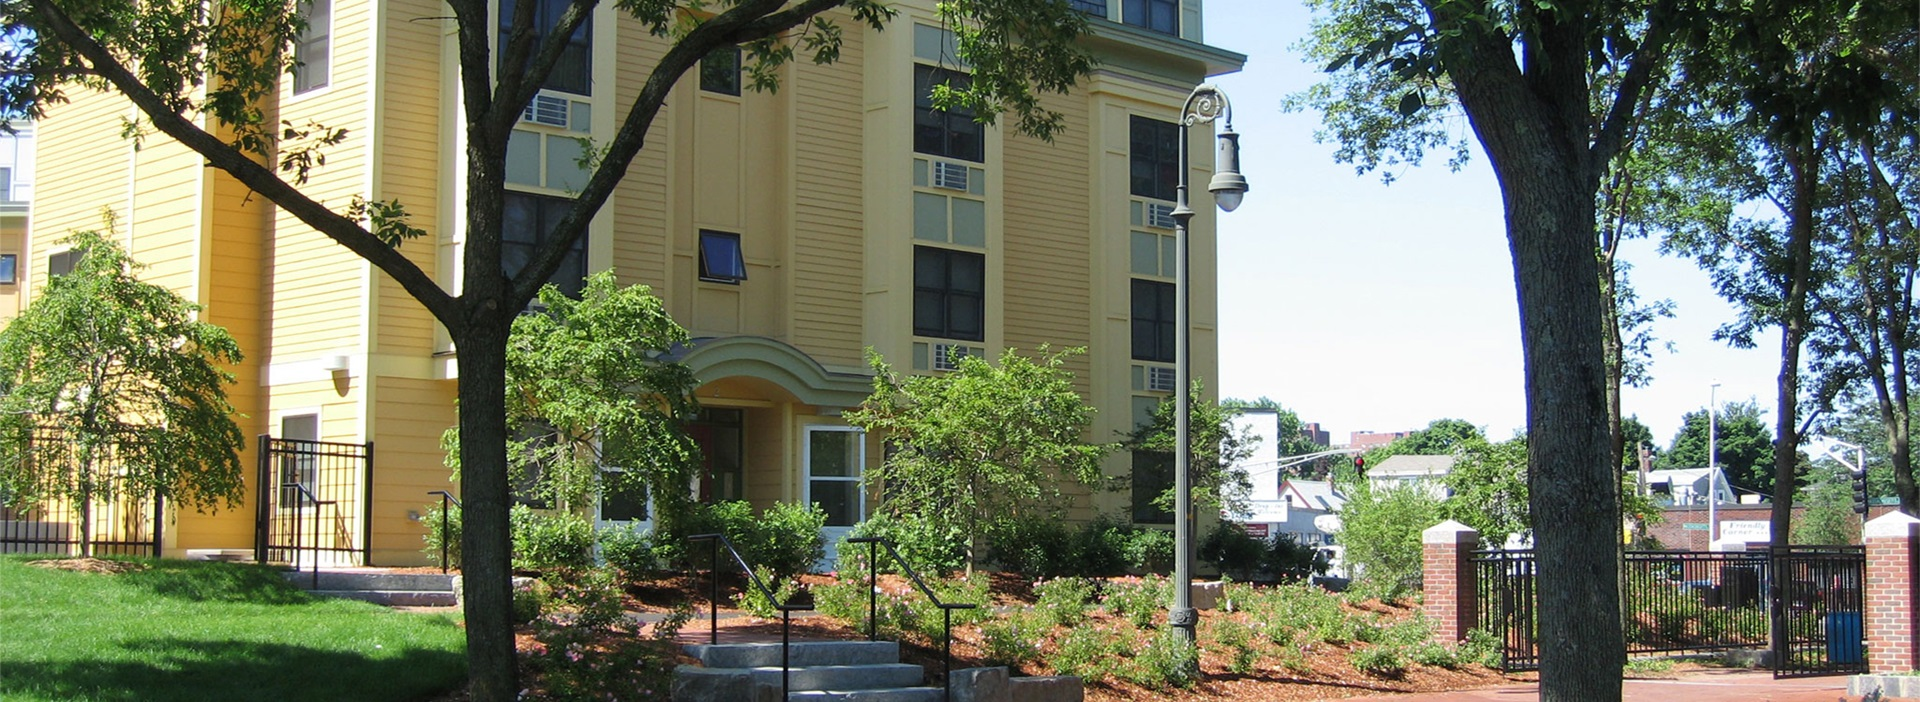 Photo of the Trolley Square Apartments